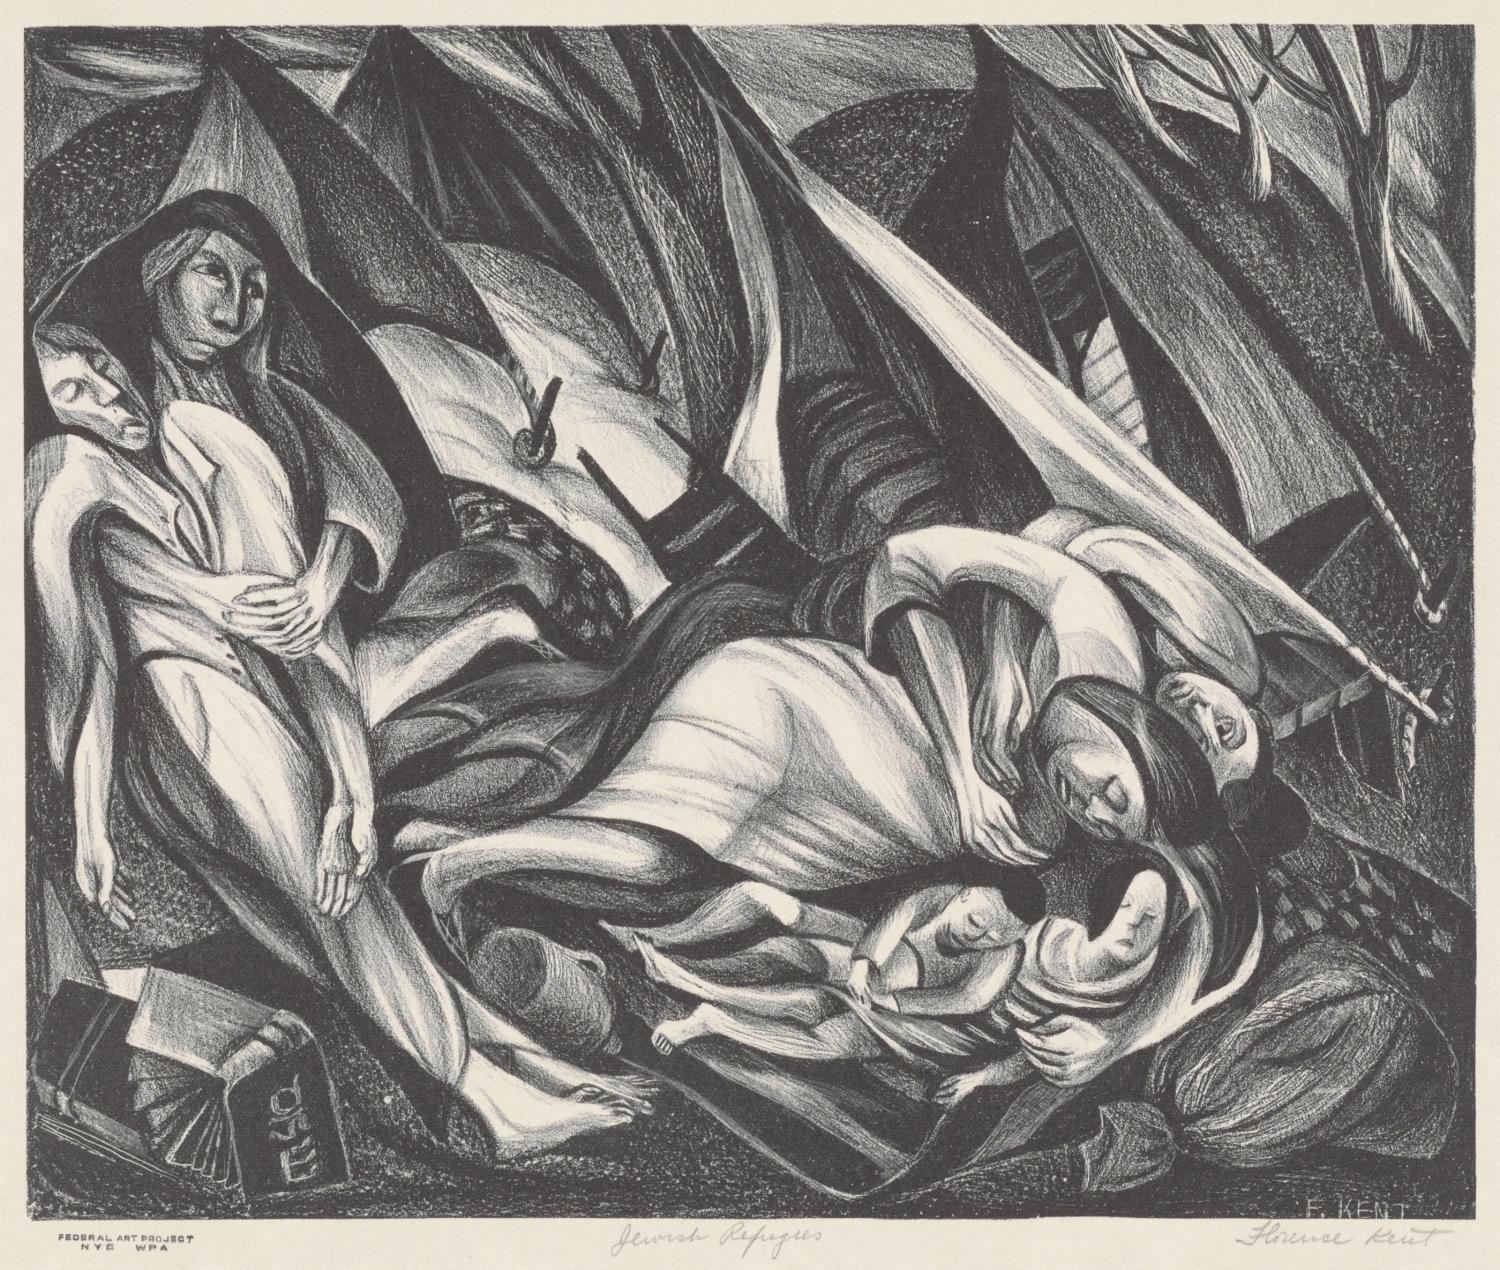 Florence Kent, Jewish Refugees, 1935–1943. Lithograph. Allocated by the US Government, Commissioned through the New Deal art projects, 1943-4-210.